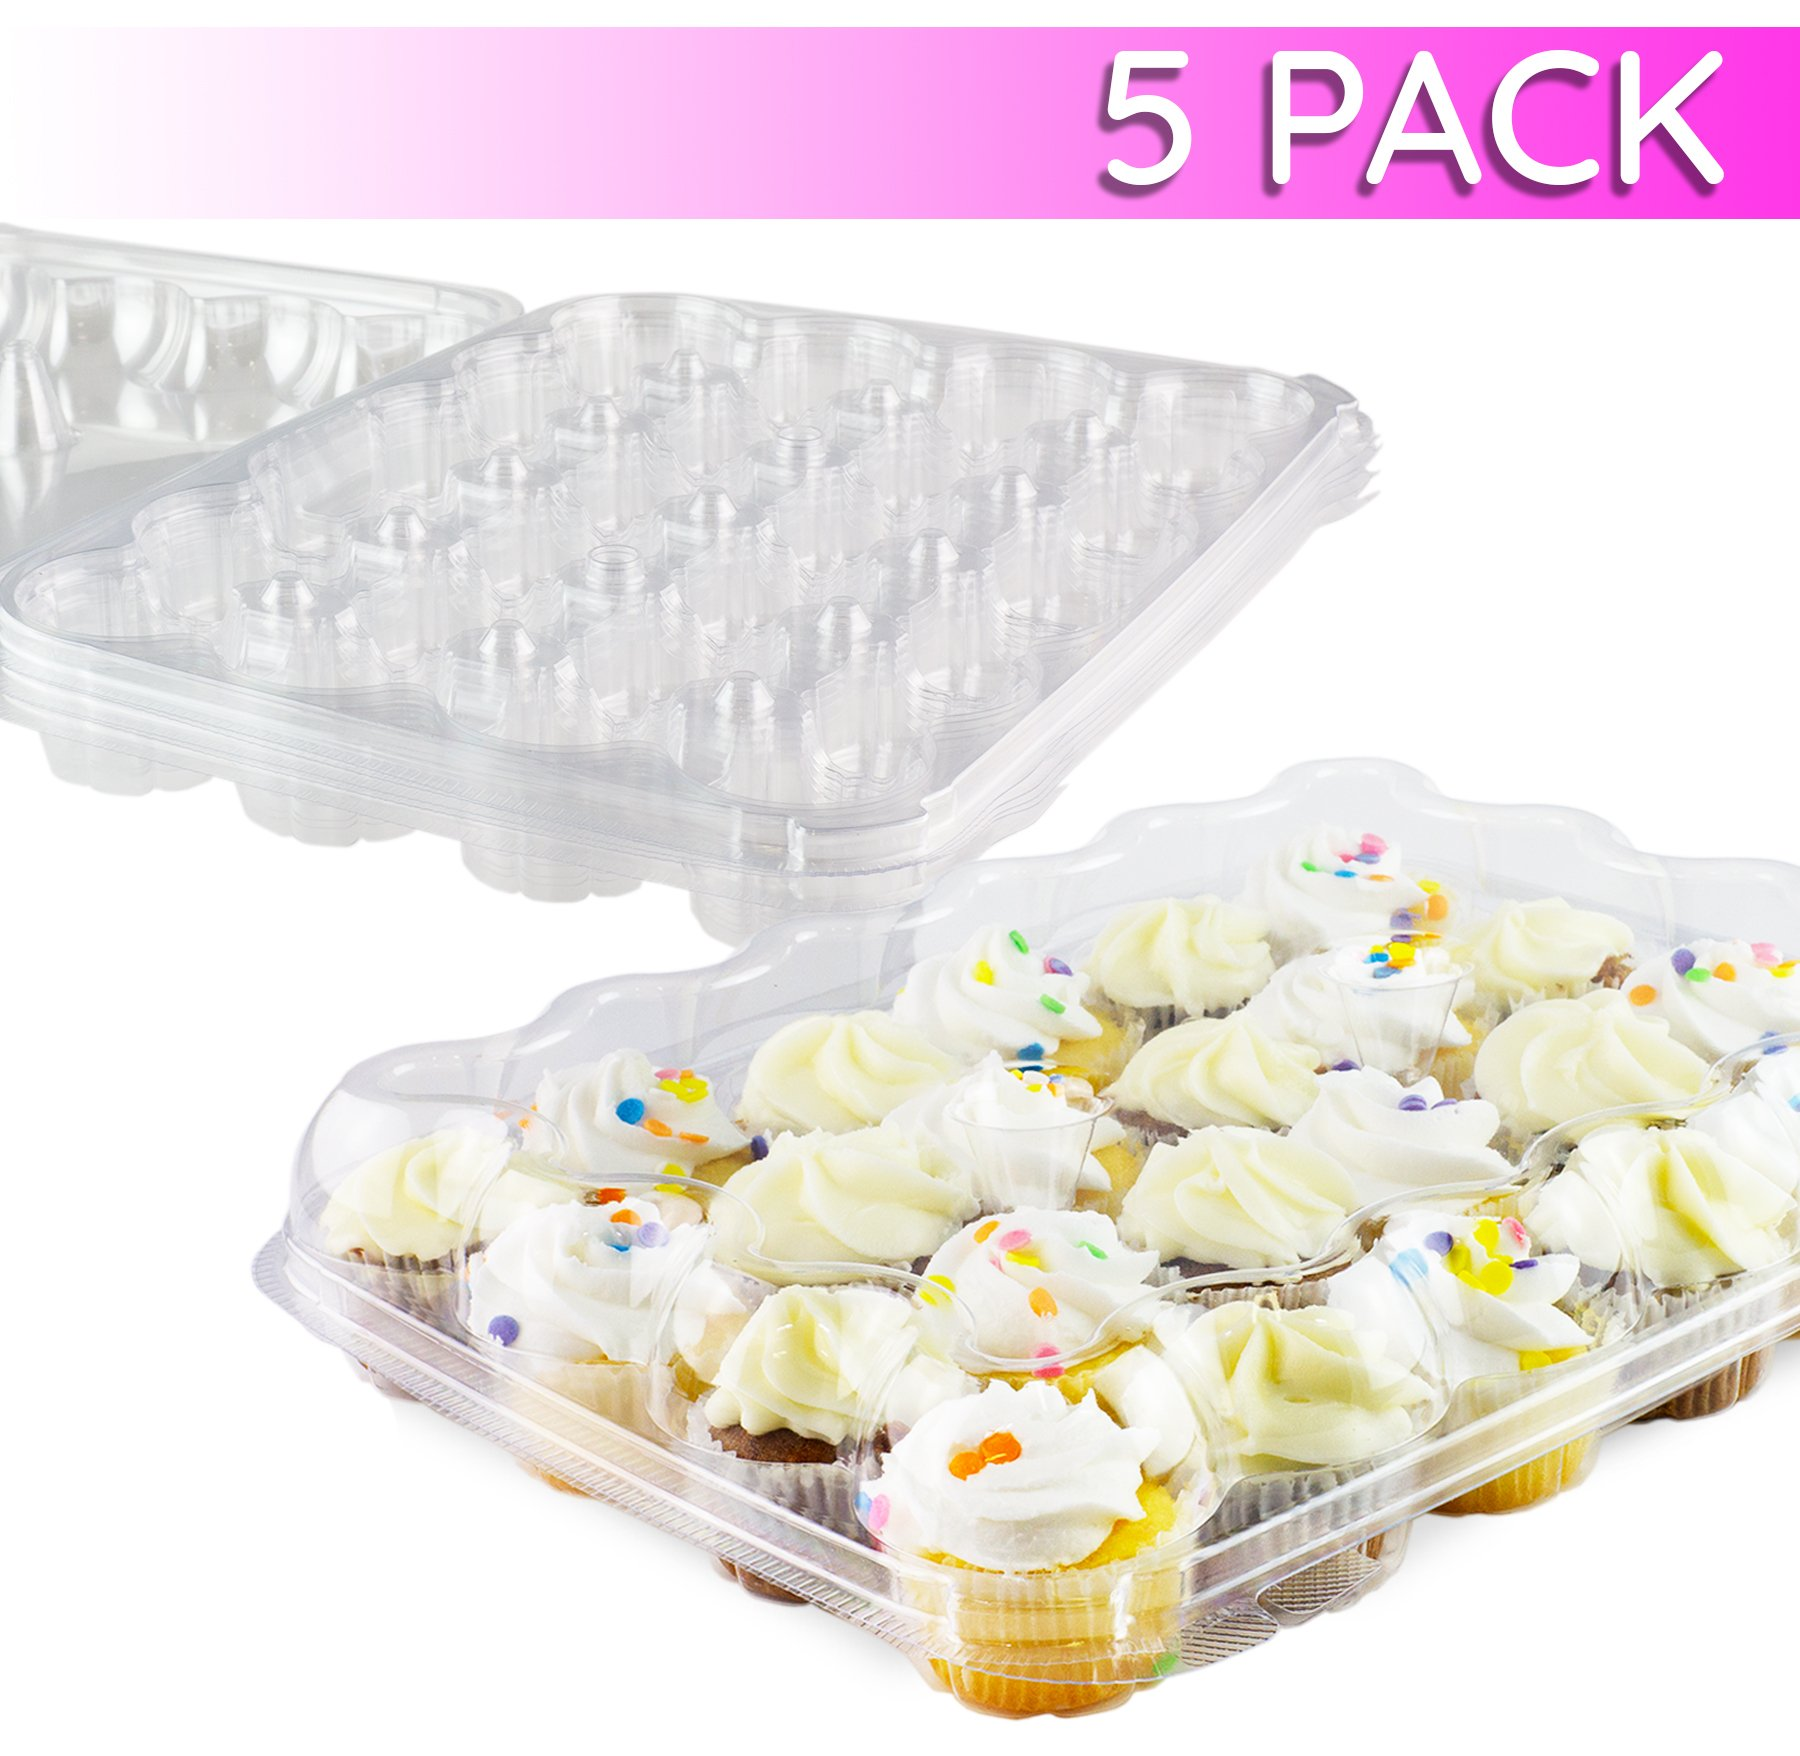 Chefible Premium 24 Mini Cupcake Container | Extremely Durable Cupcake Boxes | Mini Cupcakes, 5 Pack